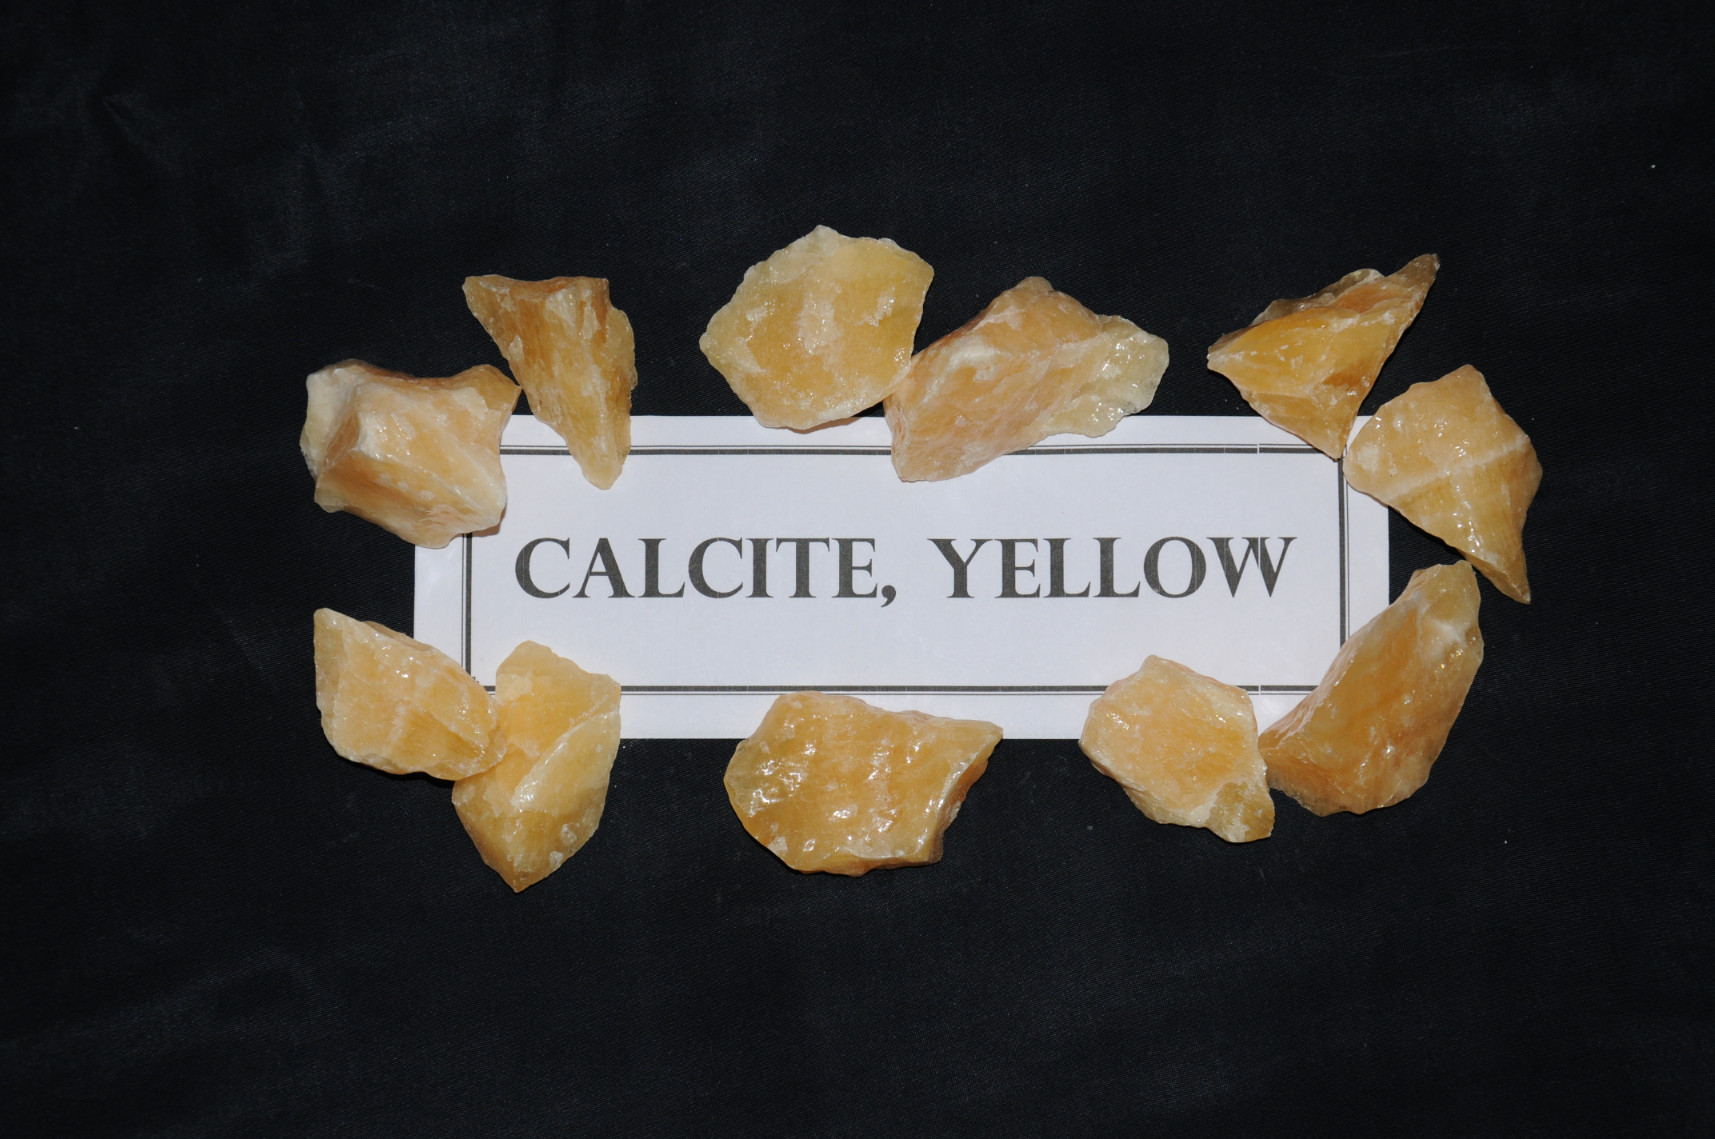 Calcite, Yellow